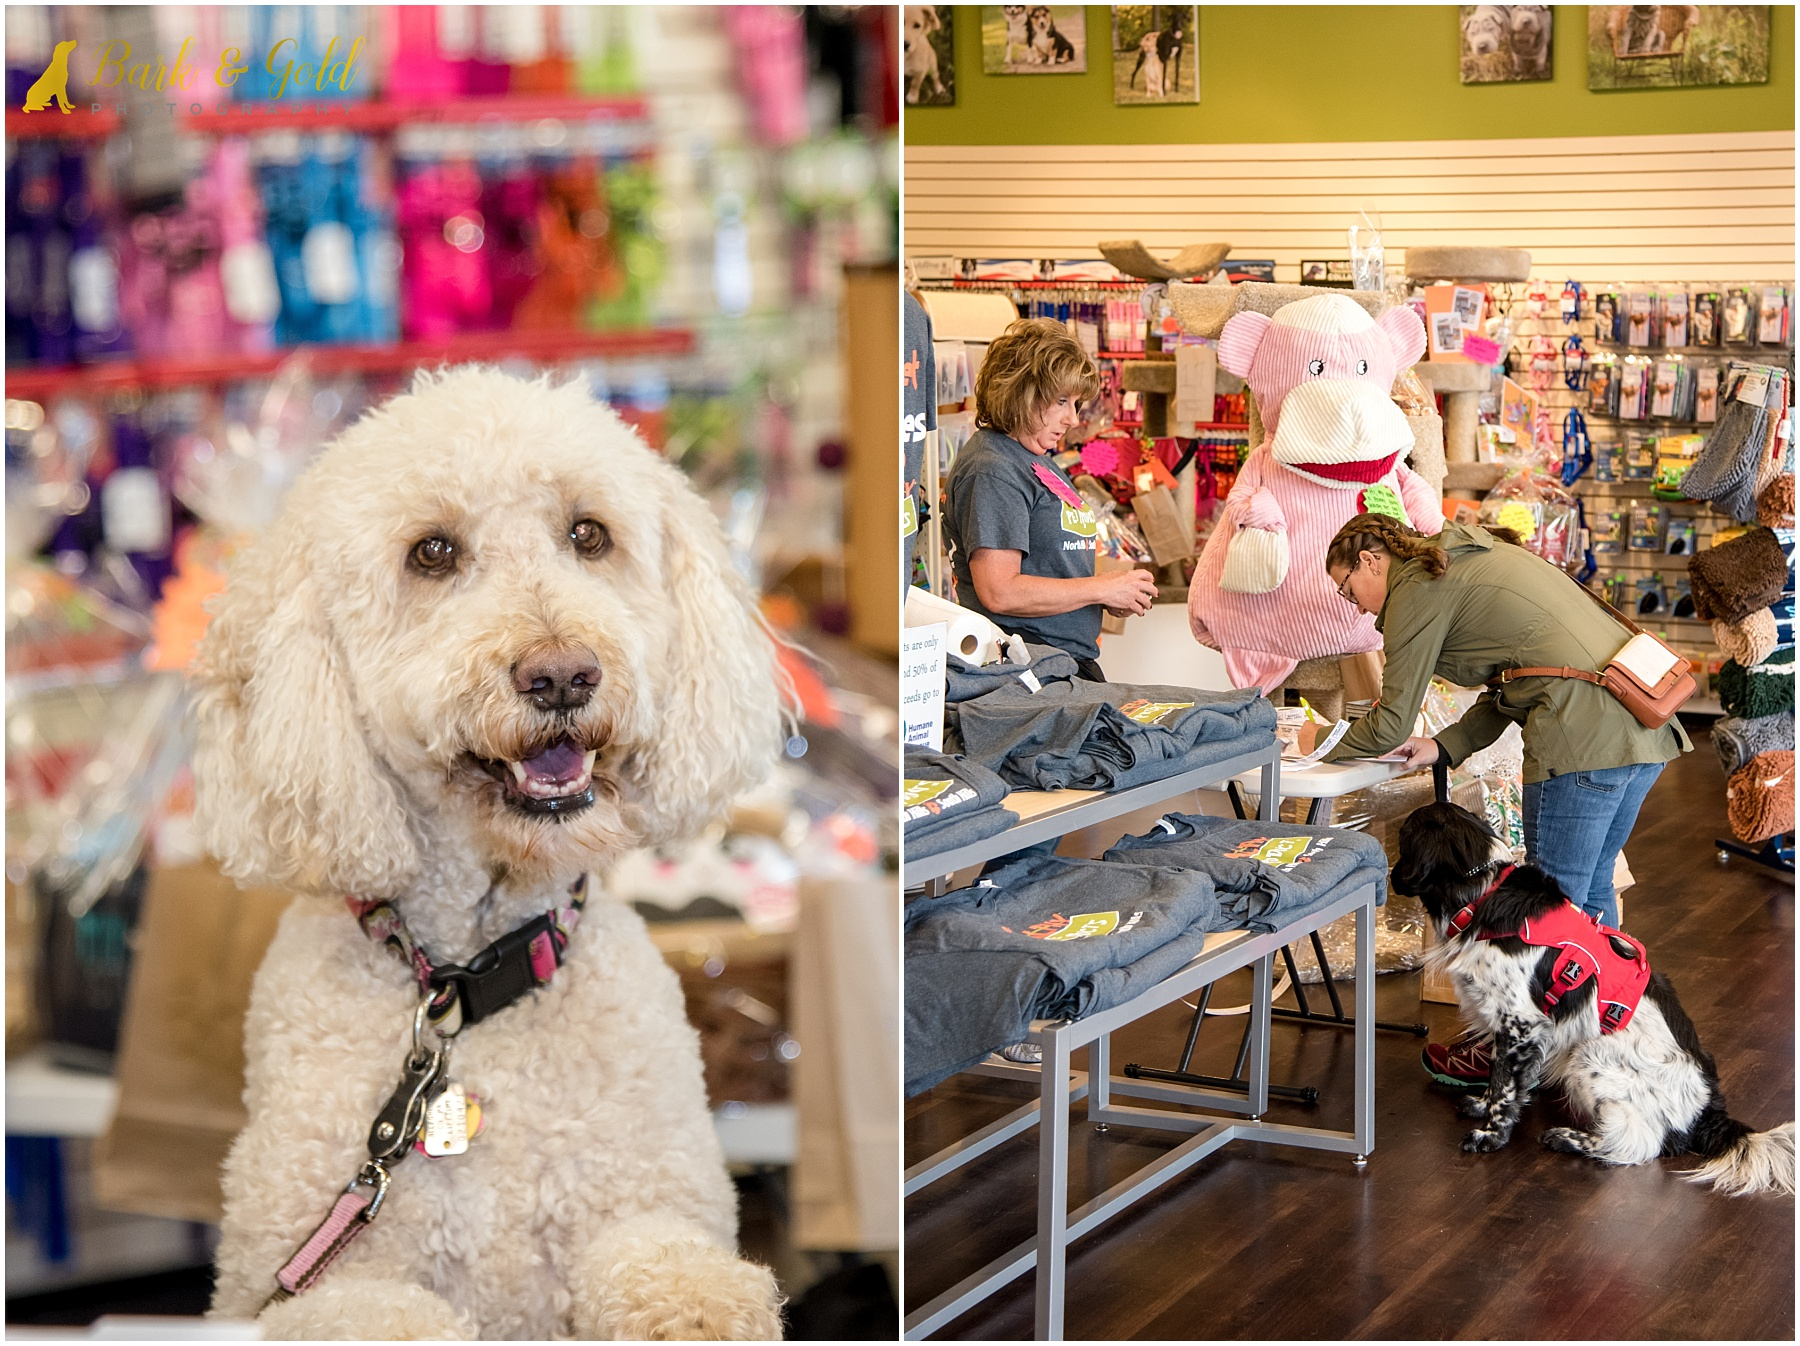 dogs shopping in Healthy Pet Products during Healthy Pet Day 2018